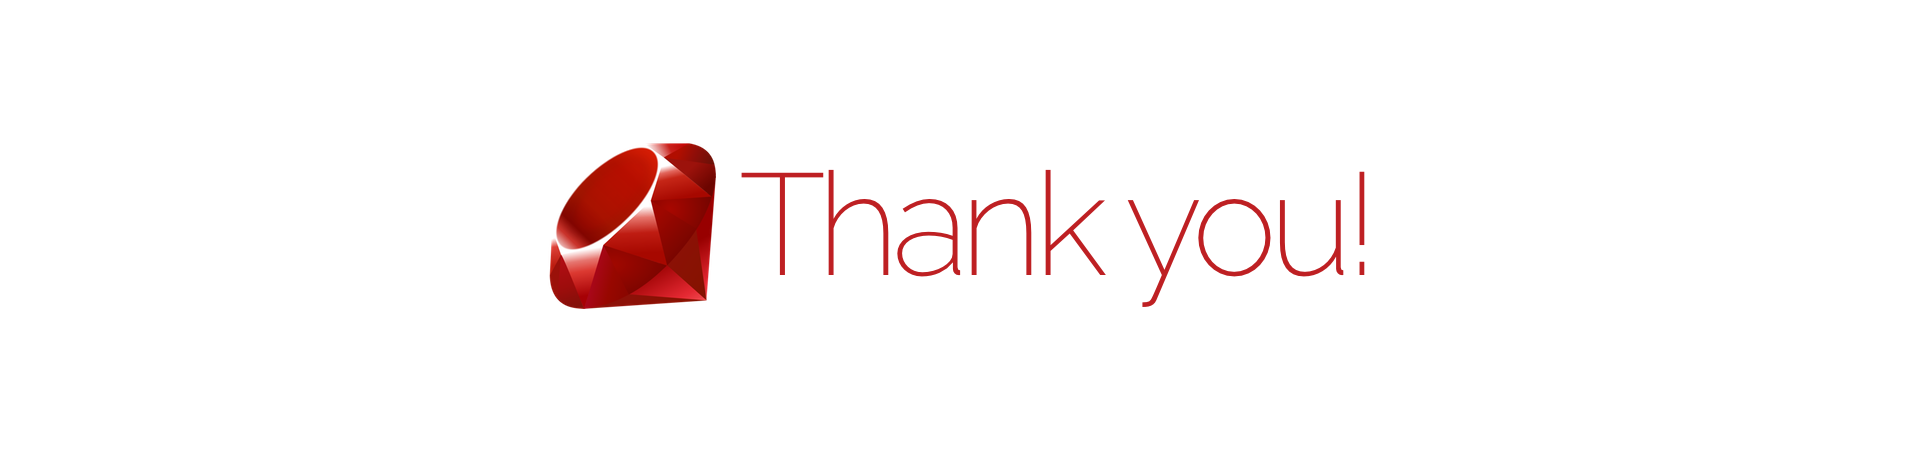 The Ruby logo and the text 'Thank you'